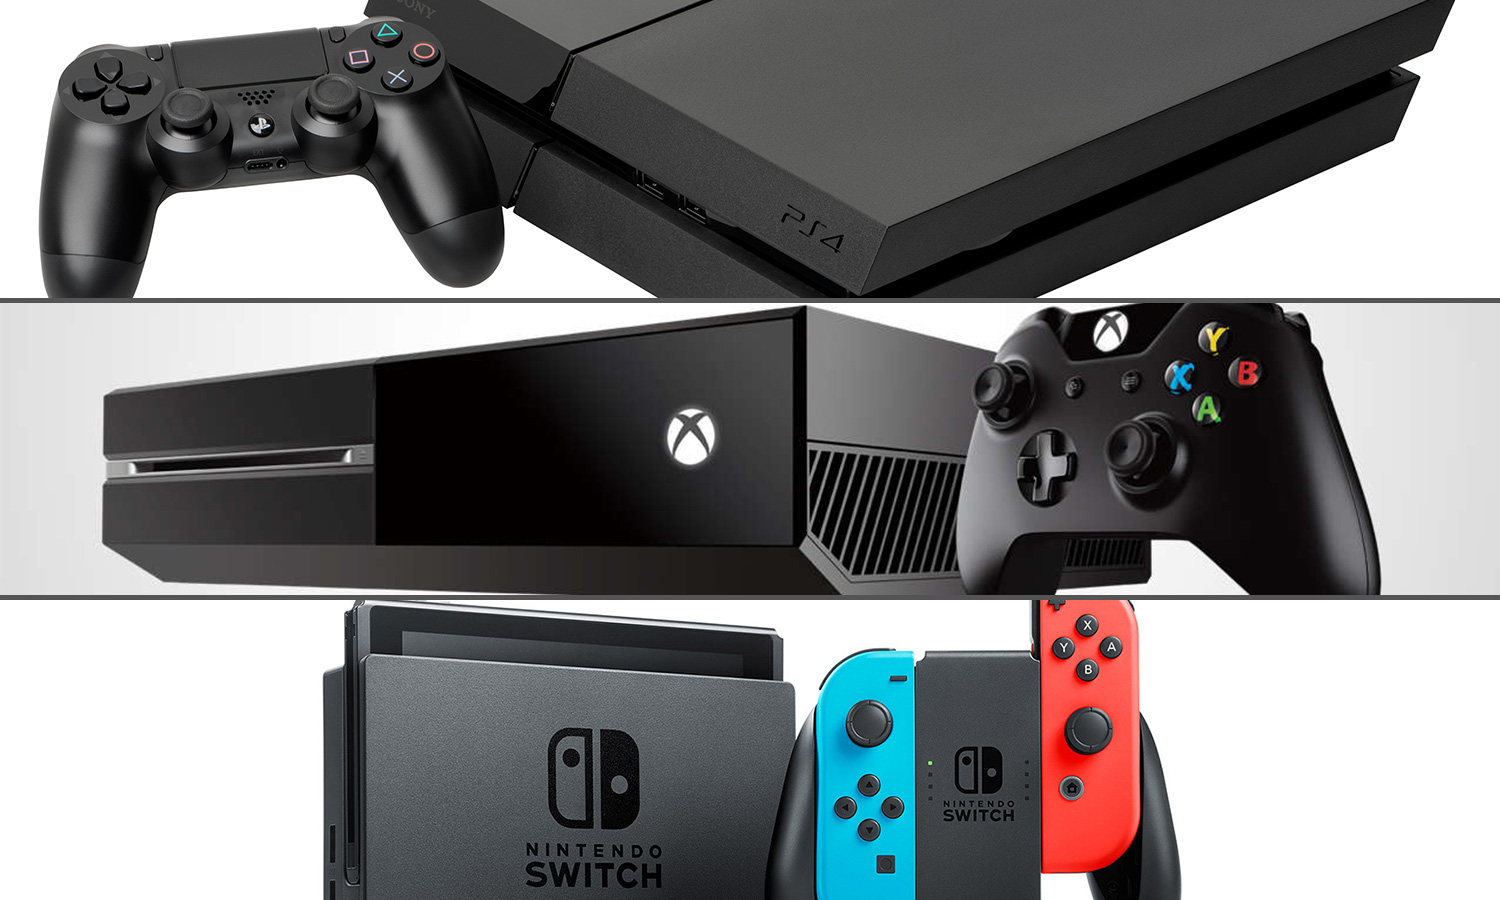 Gifting a Console? Open it and Update Beforehand | Tom's Guide